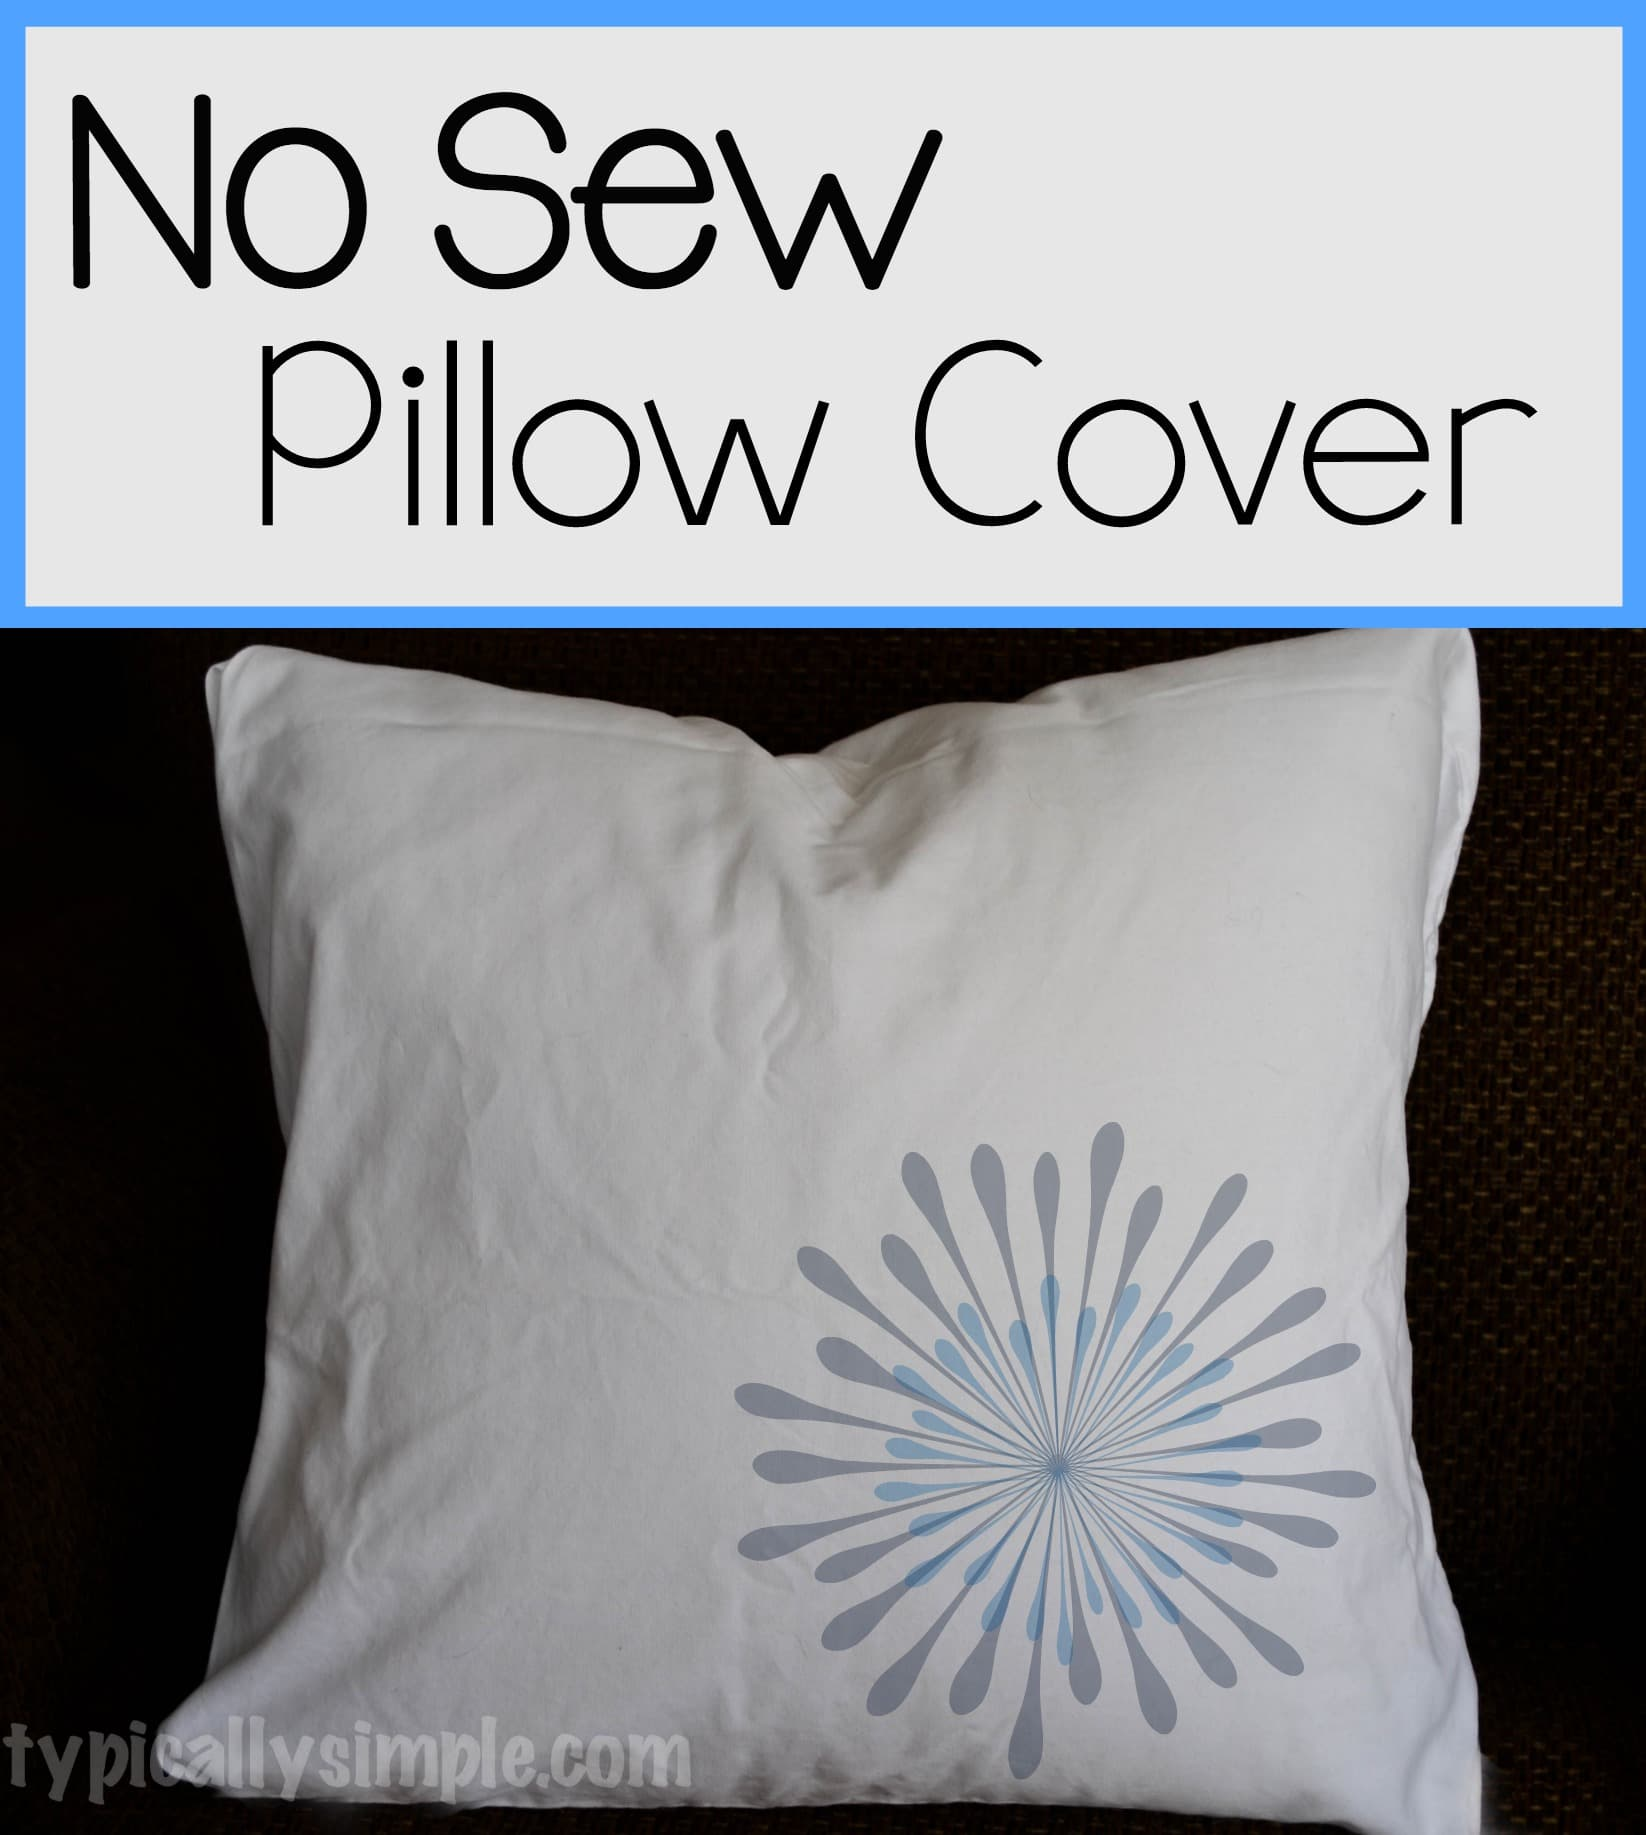 Make Throw Pillow Cover Without Sewing : No Sew Pillow Cover - Typically Simple